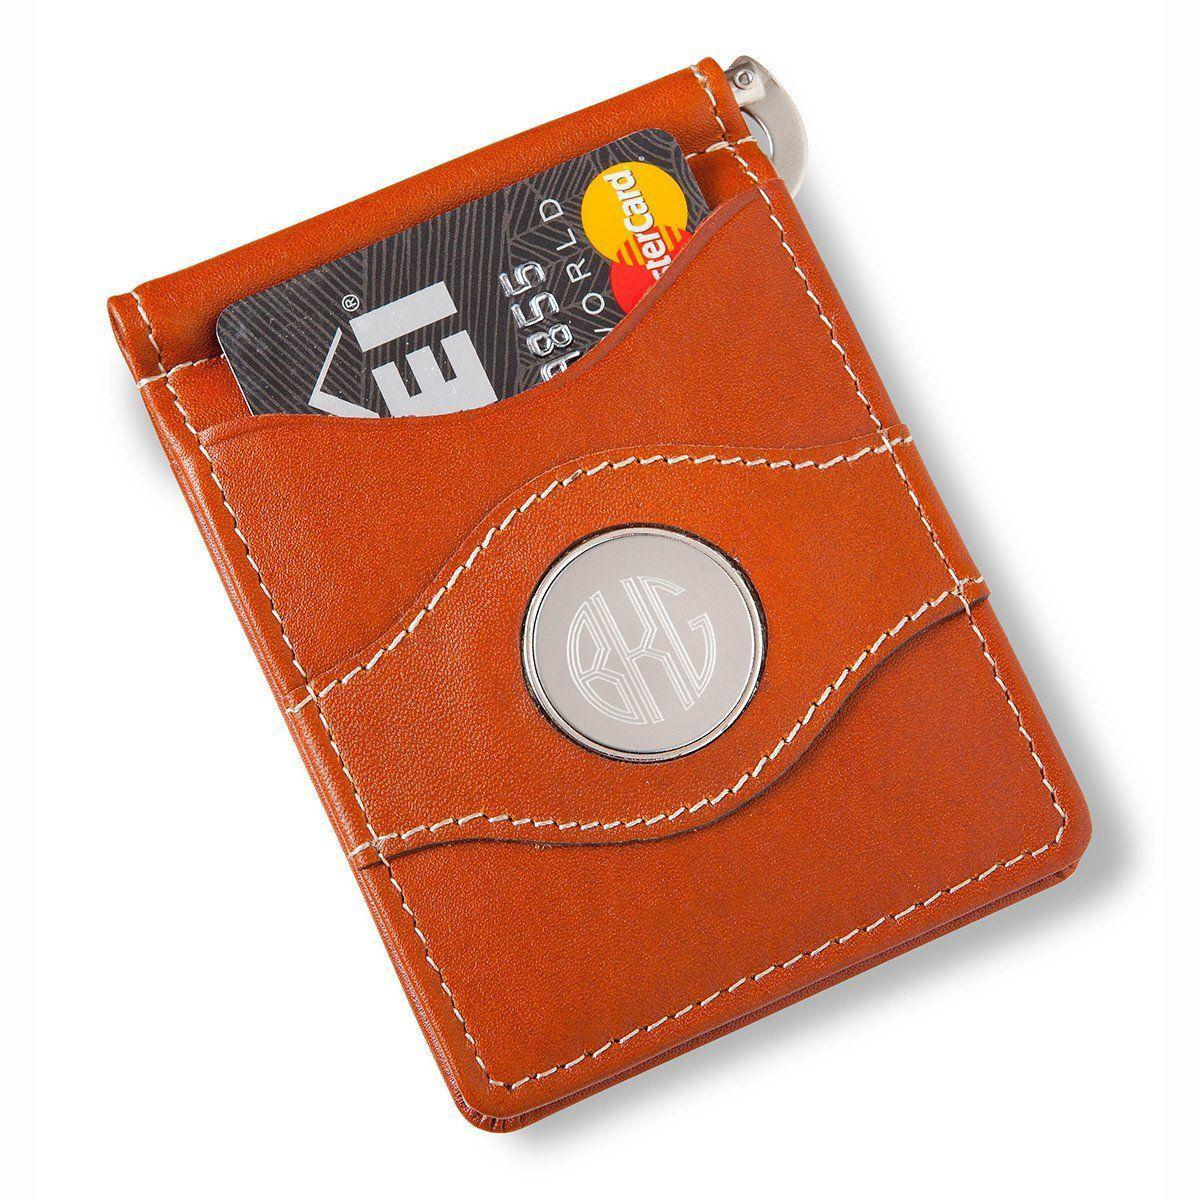 Personalized-Money-Clip-Wallet-Metal-Pin-Executive-Gifts